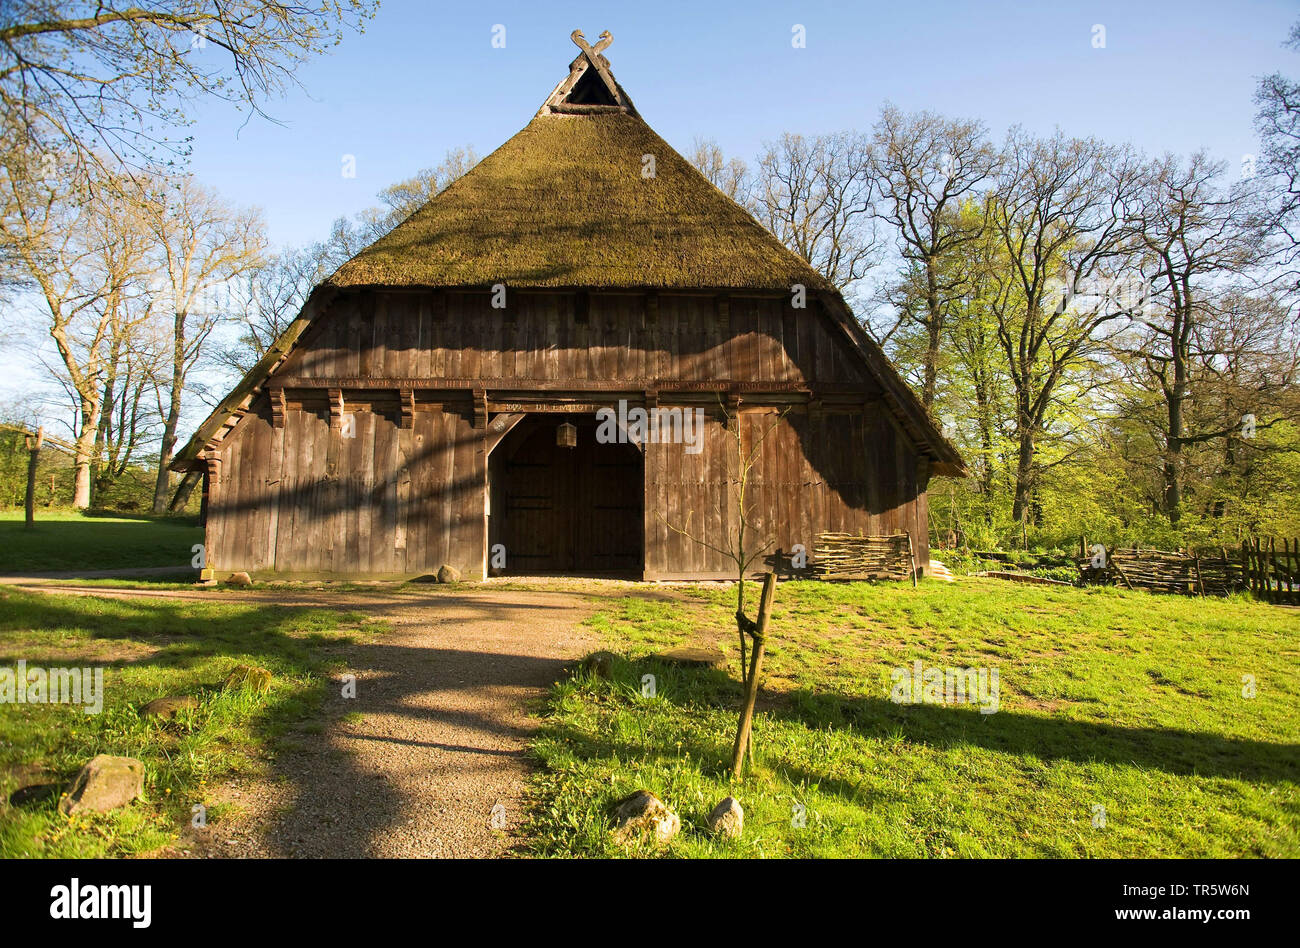 old farmhouse with thatched roof in a open-air museum, Germany, Lower Saxony, Lueneburger Heide, Wilsede - Stock Image